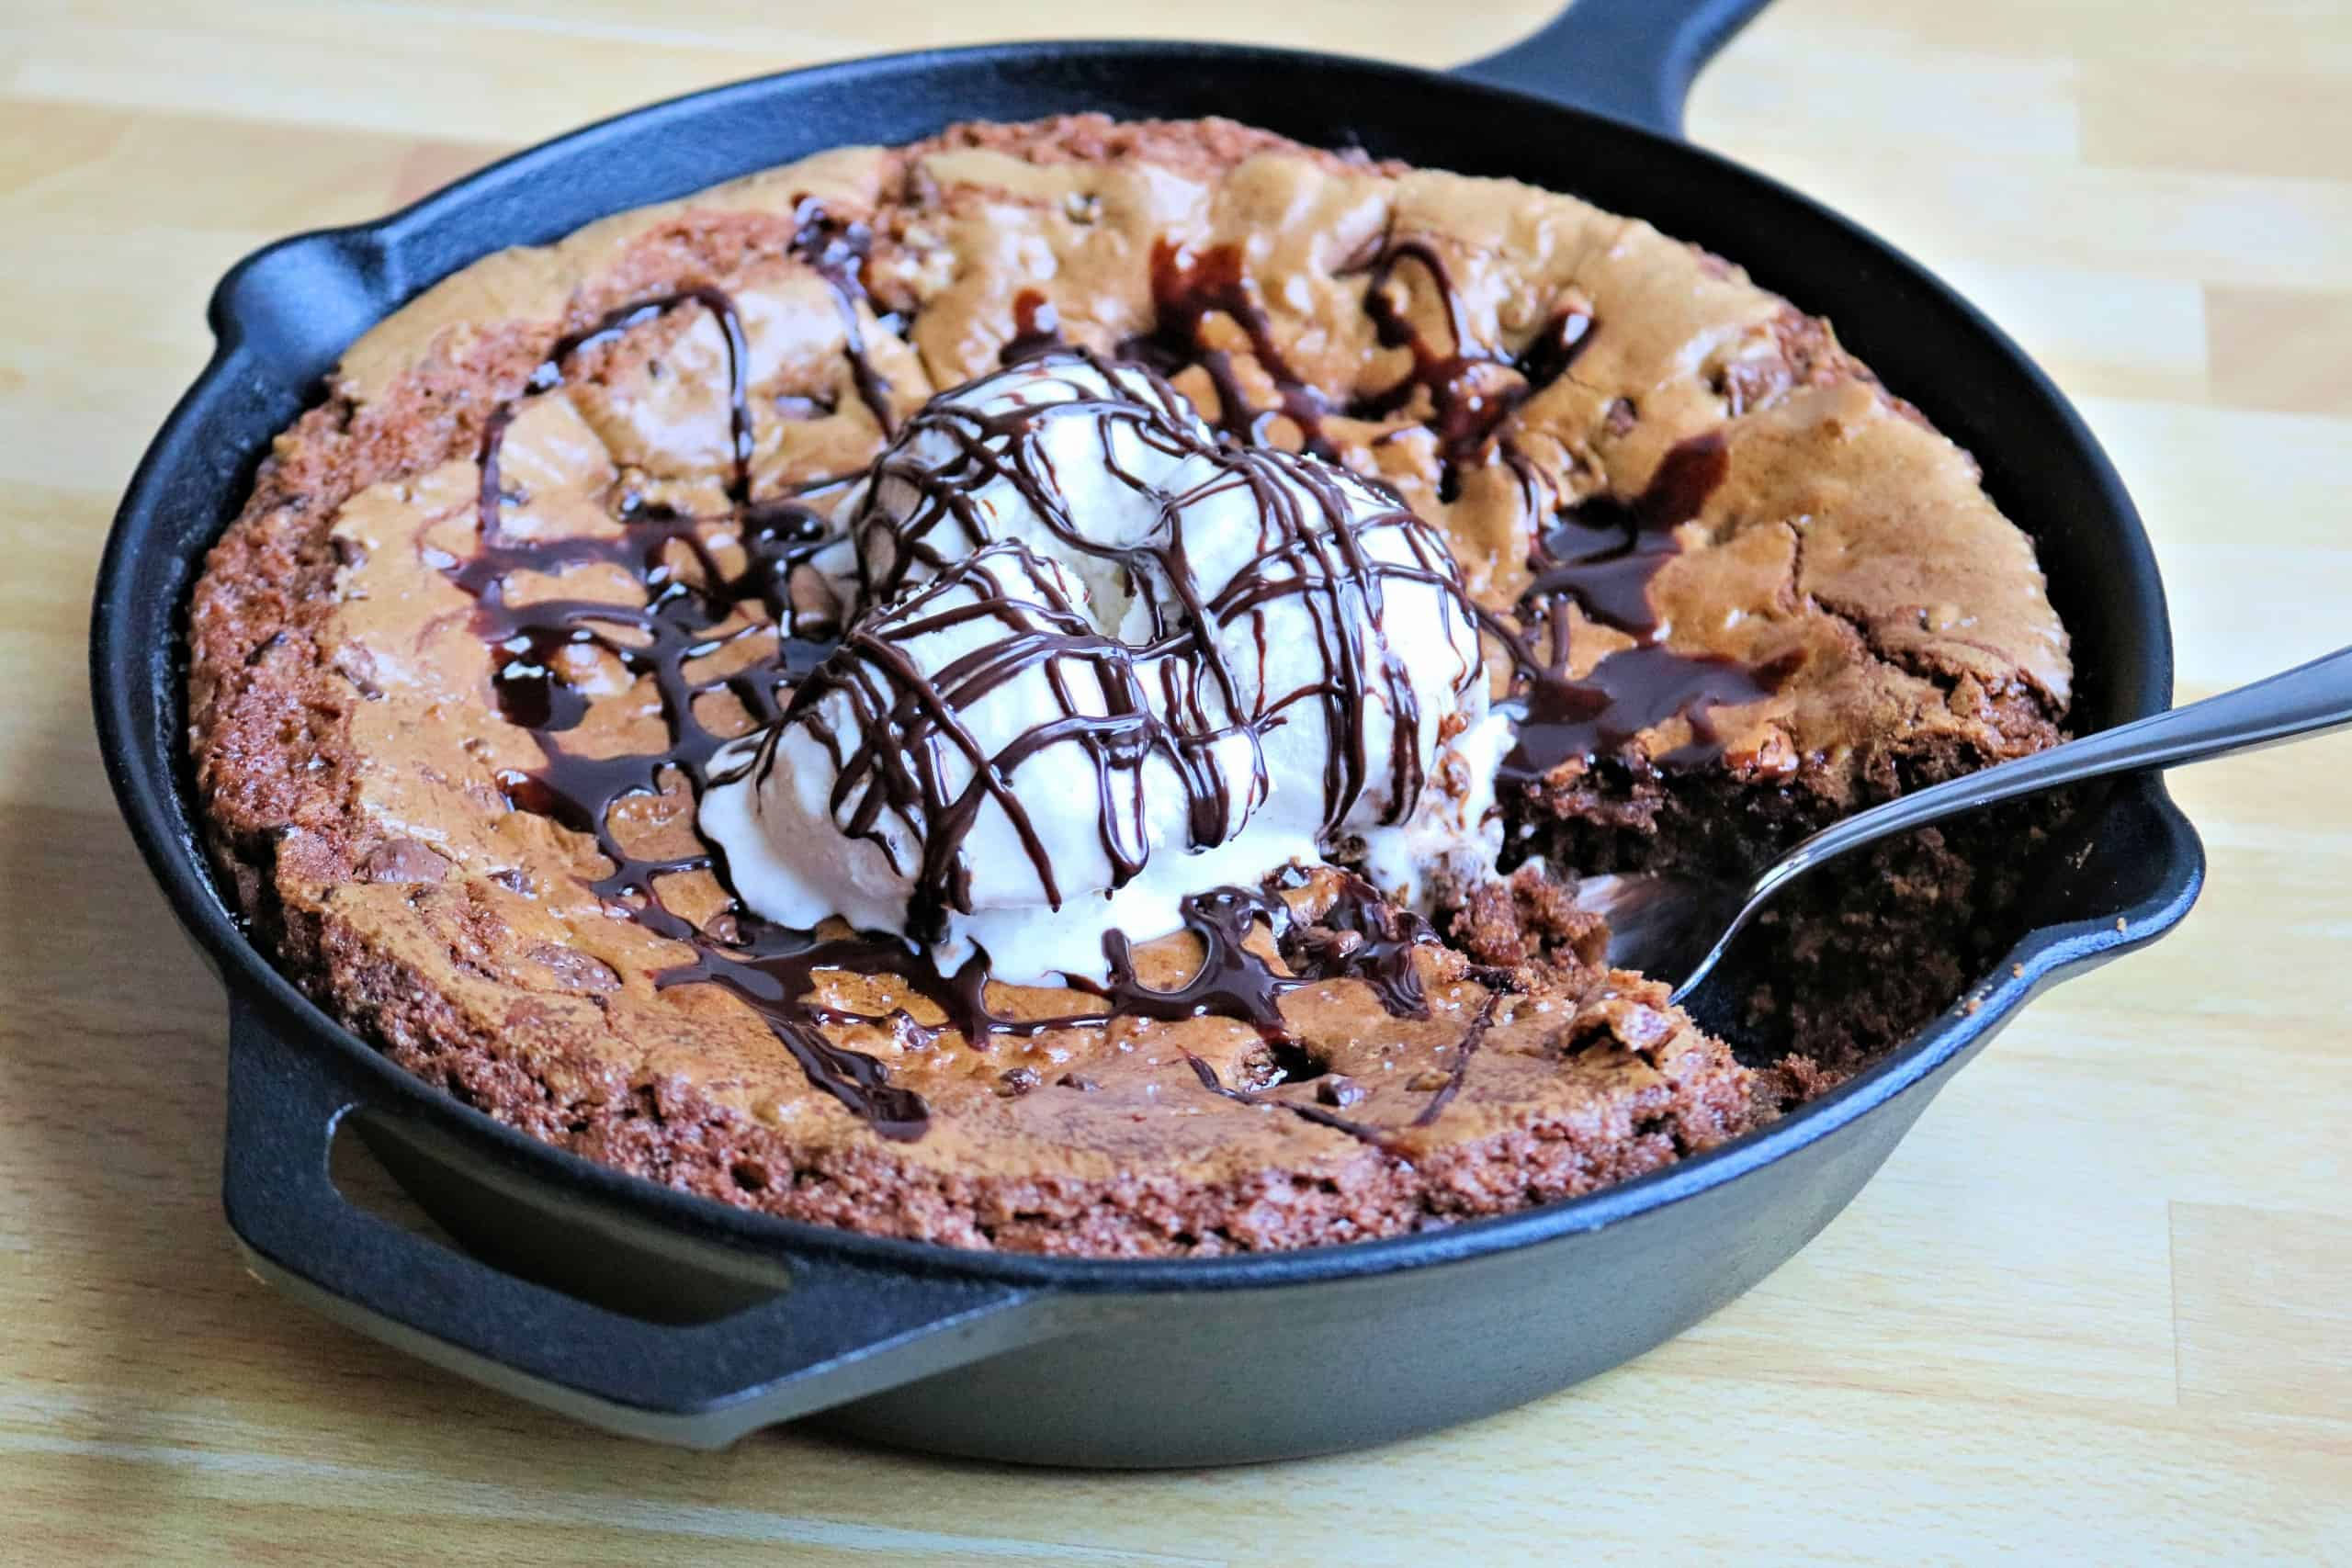 Delicious Brown Butter Chocolate Chip Cookie Skillet Recipe - This easy cast iron cookie skillet features a delicious brown butter cookie dough loaded with mini semi-sweet chocolate chips and milk chocolate chips, and topped with a pinch of sea salt, vanilla bean ice cream, and a drizzle of chocolate sauce for an epic pizookie you can't resist! #skilletcookie #chocolatechipcookie #brownbuttercookie #desserts #pizookie #castiron